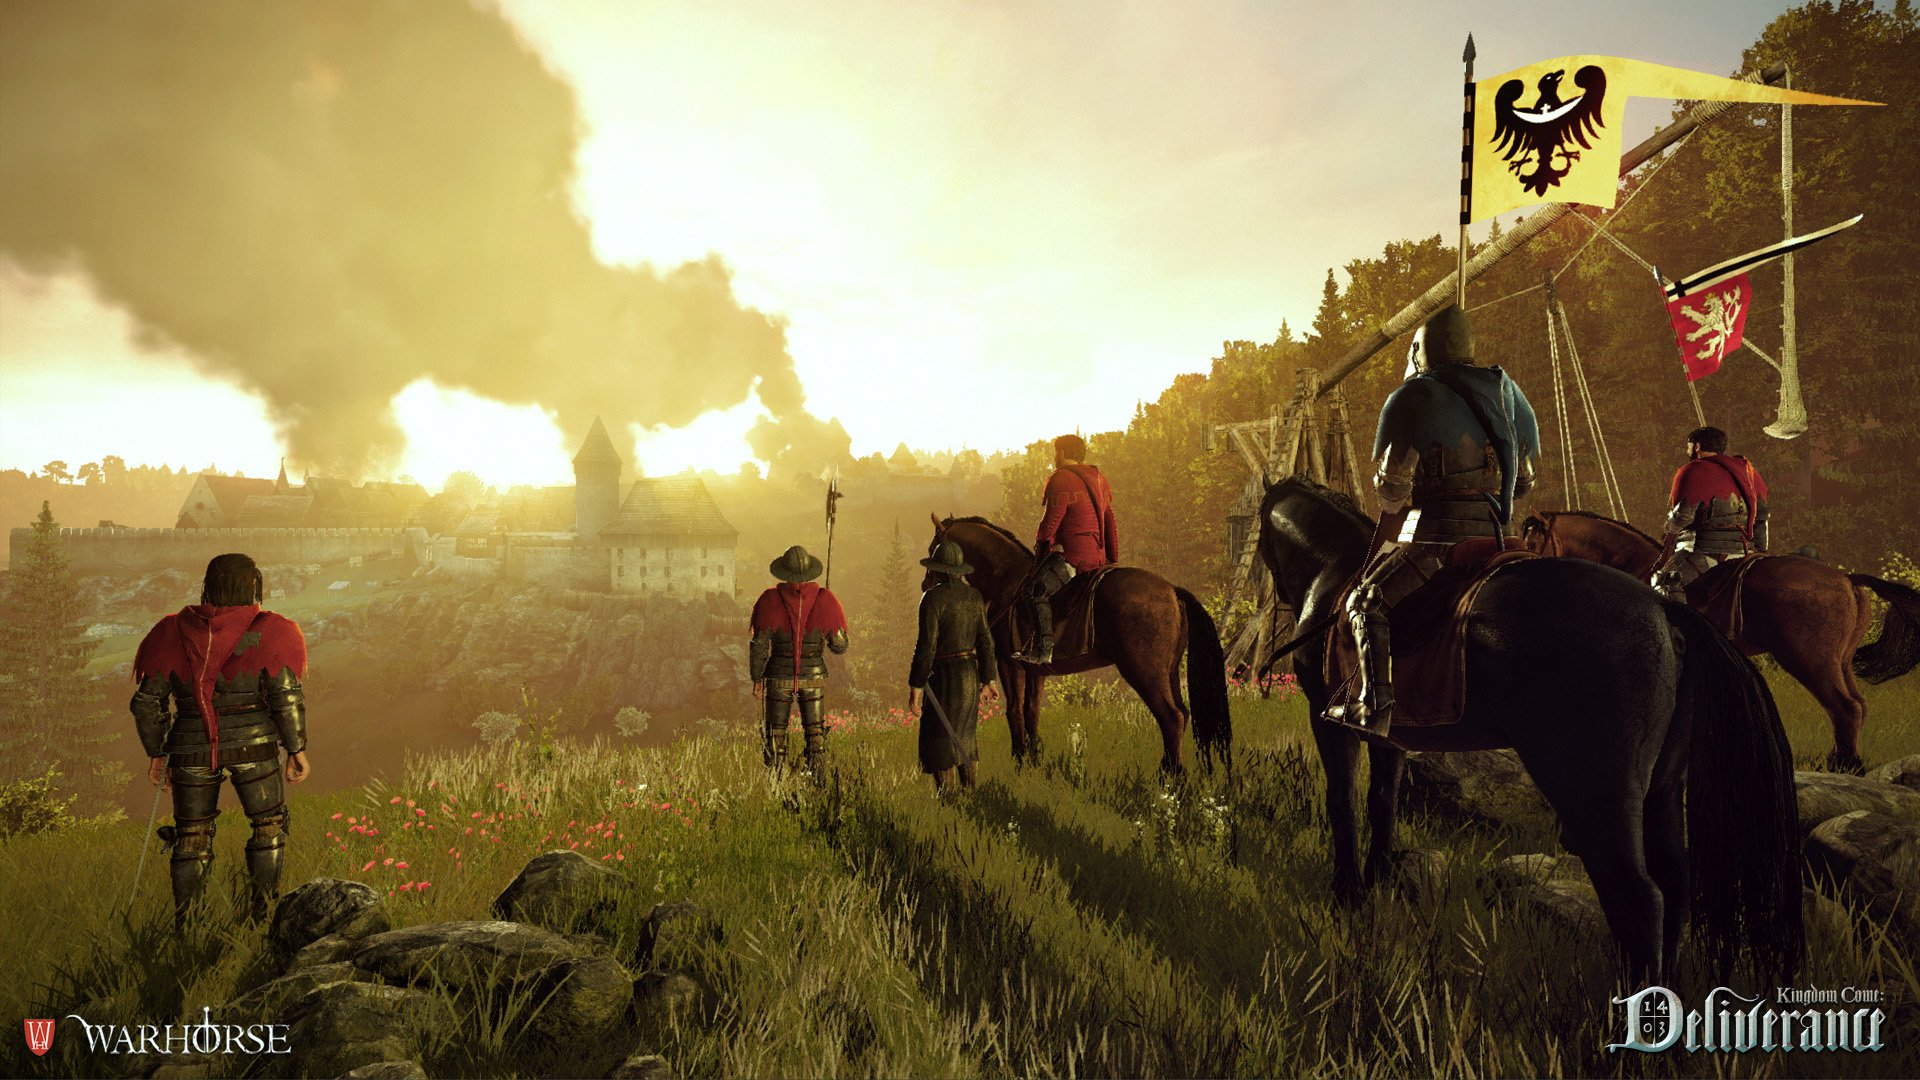 kingdom-come-deliverance-8-rcm1920x0.jpg